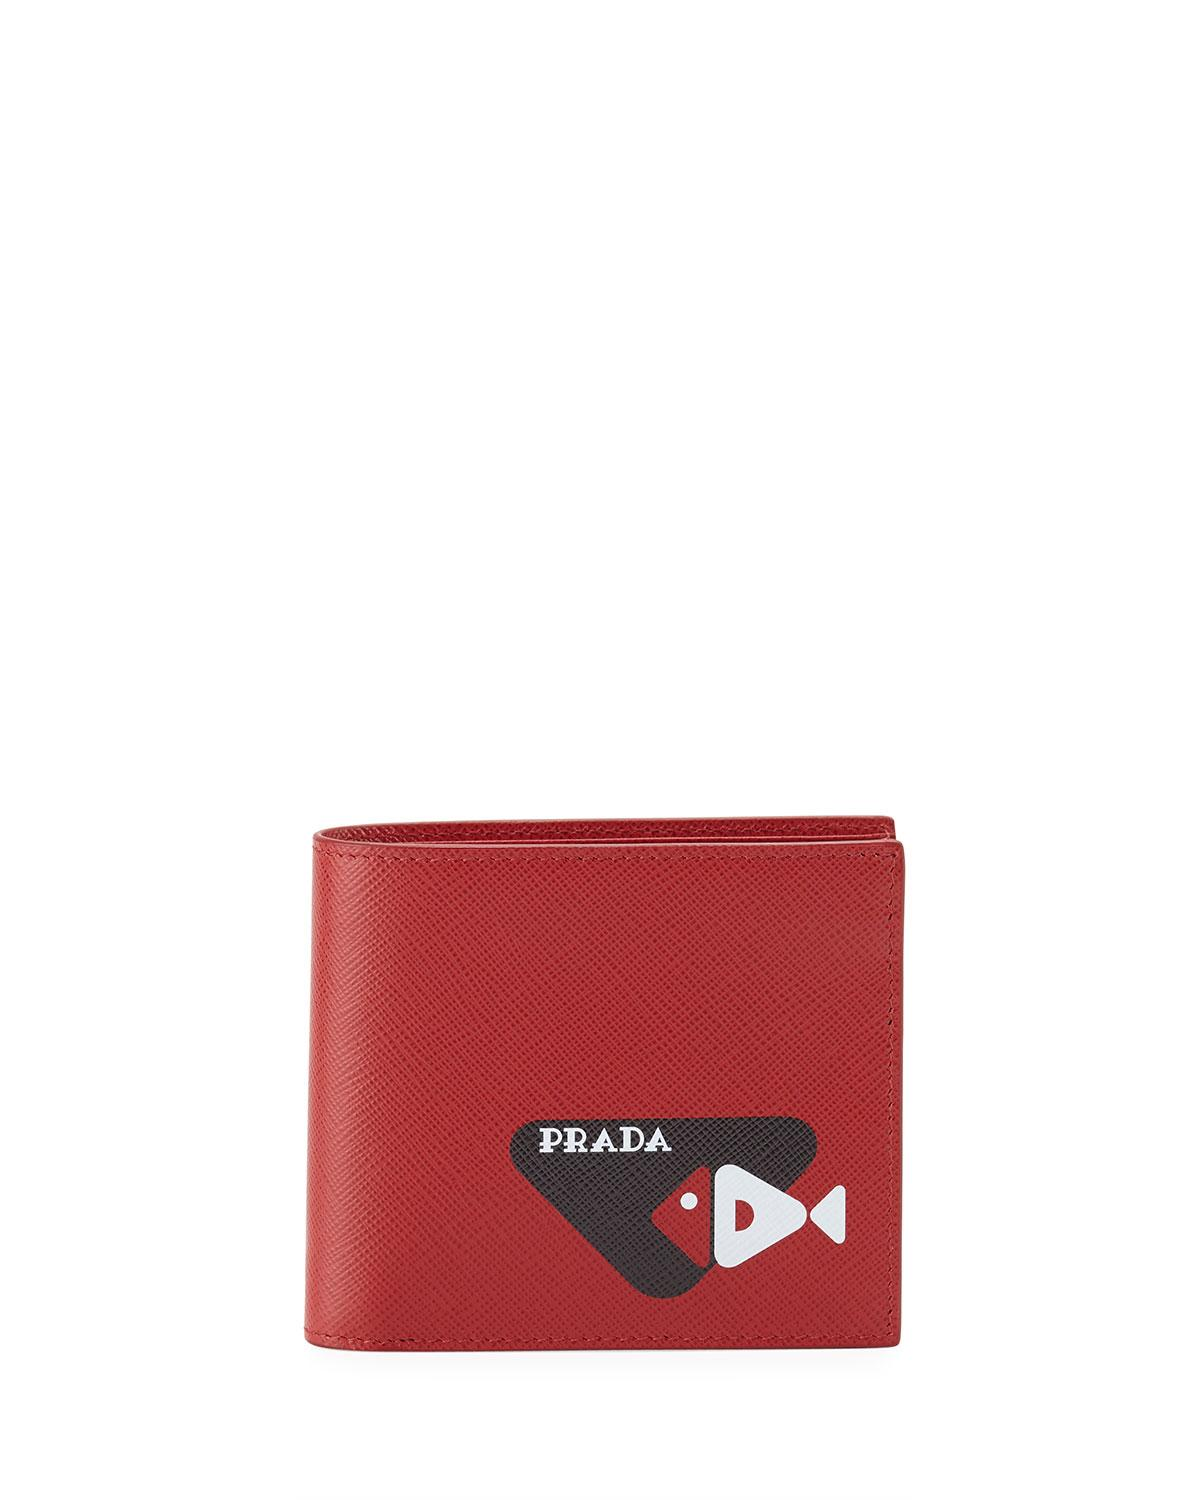 e6bf8ab033e0 Lyst - Prada Stamped Classic Wallet in Red for Men